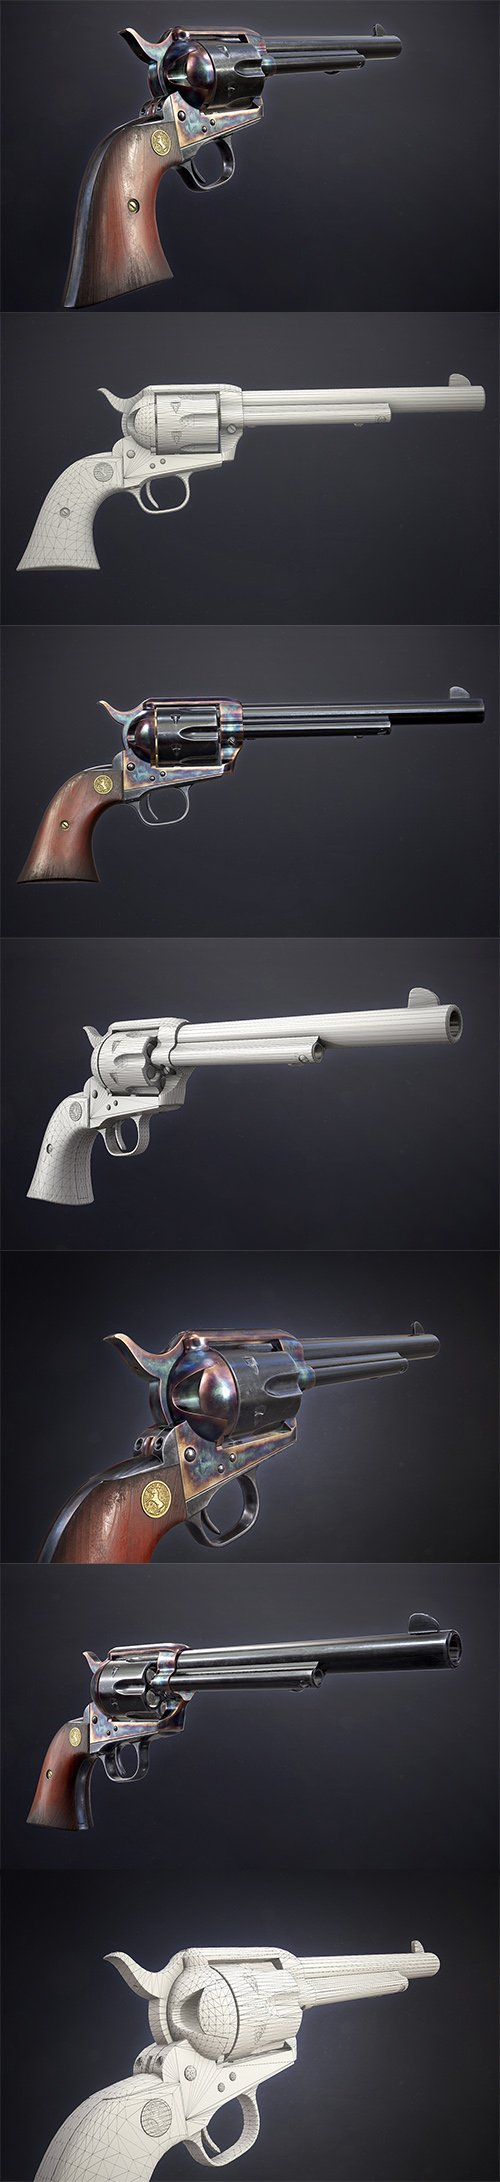 Colt Single Action Army - Peacemaker